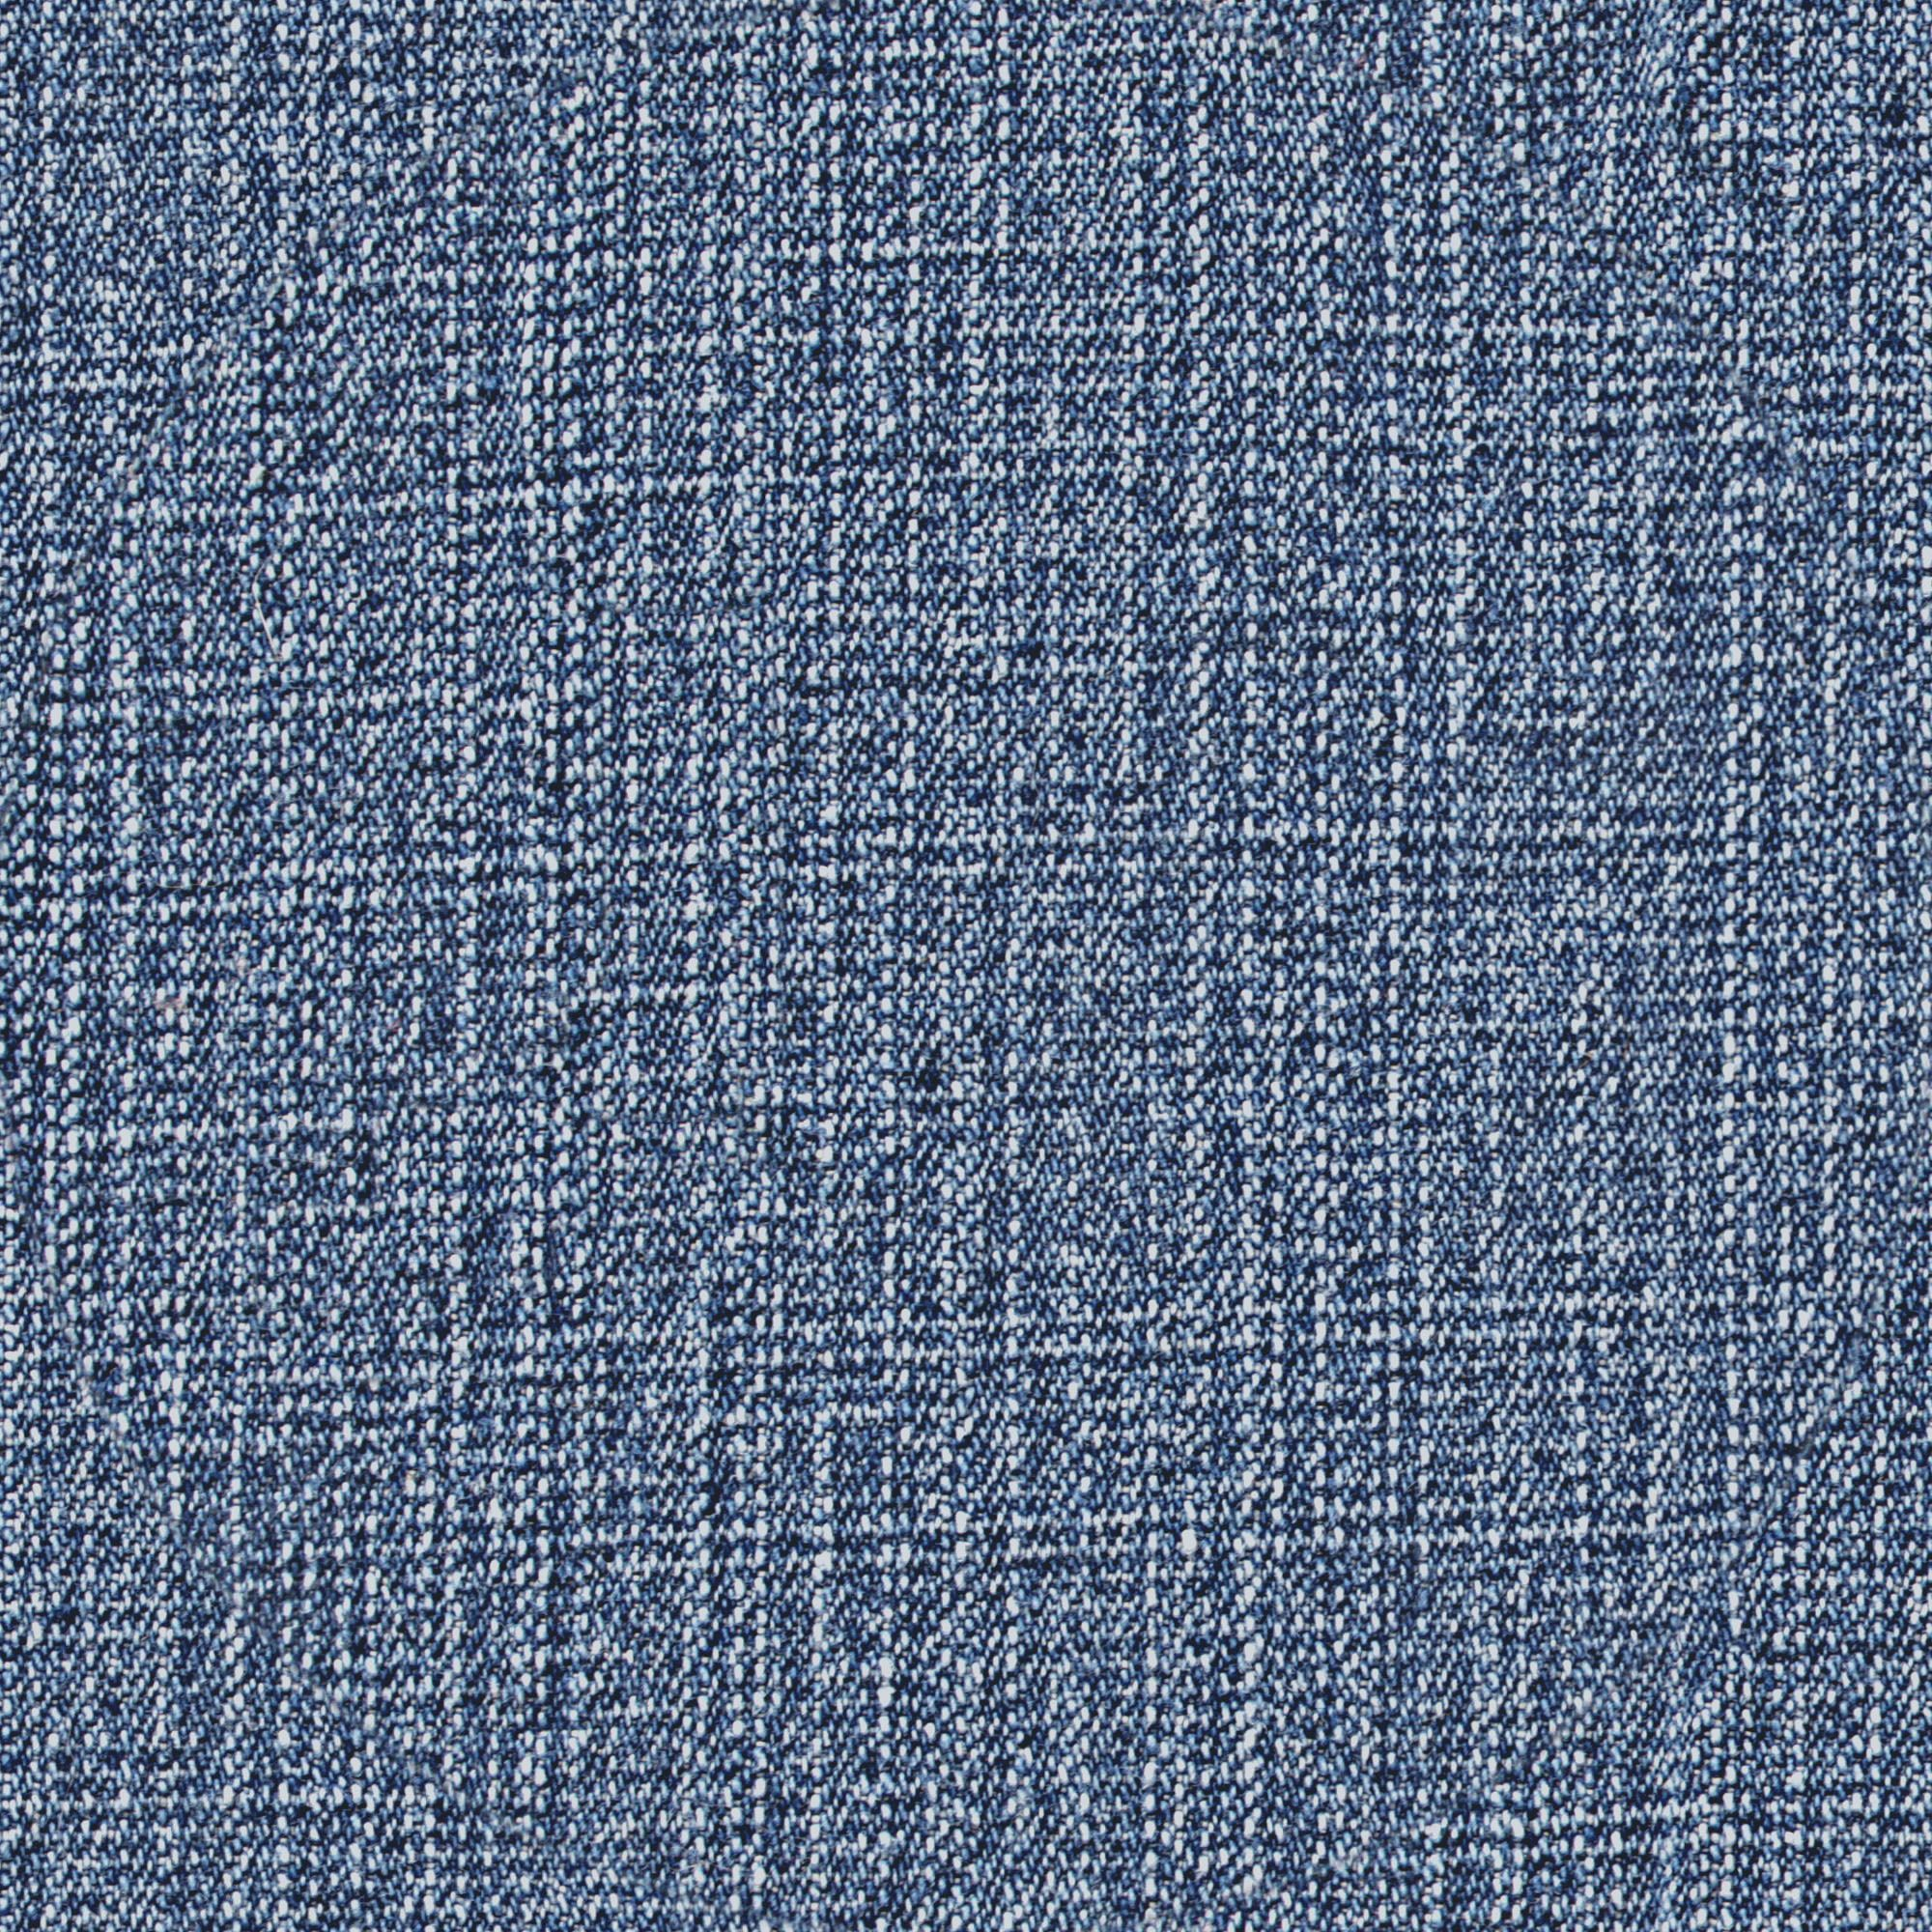 x seamless denim texture textures pinterest